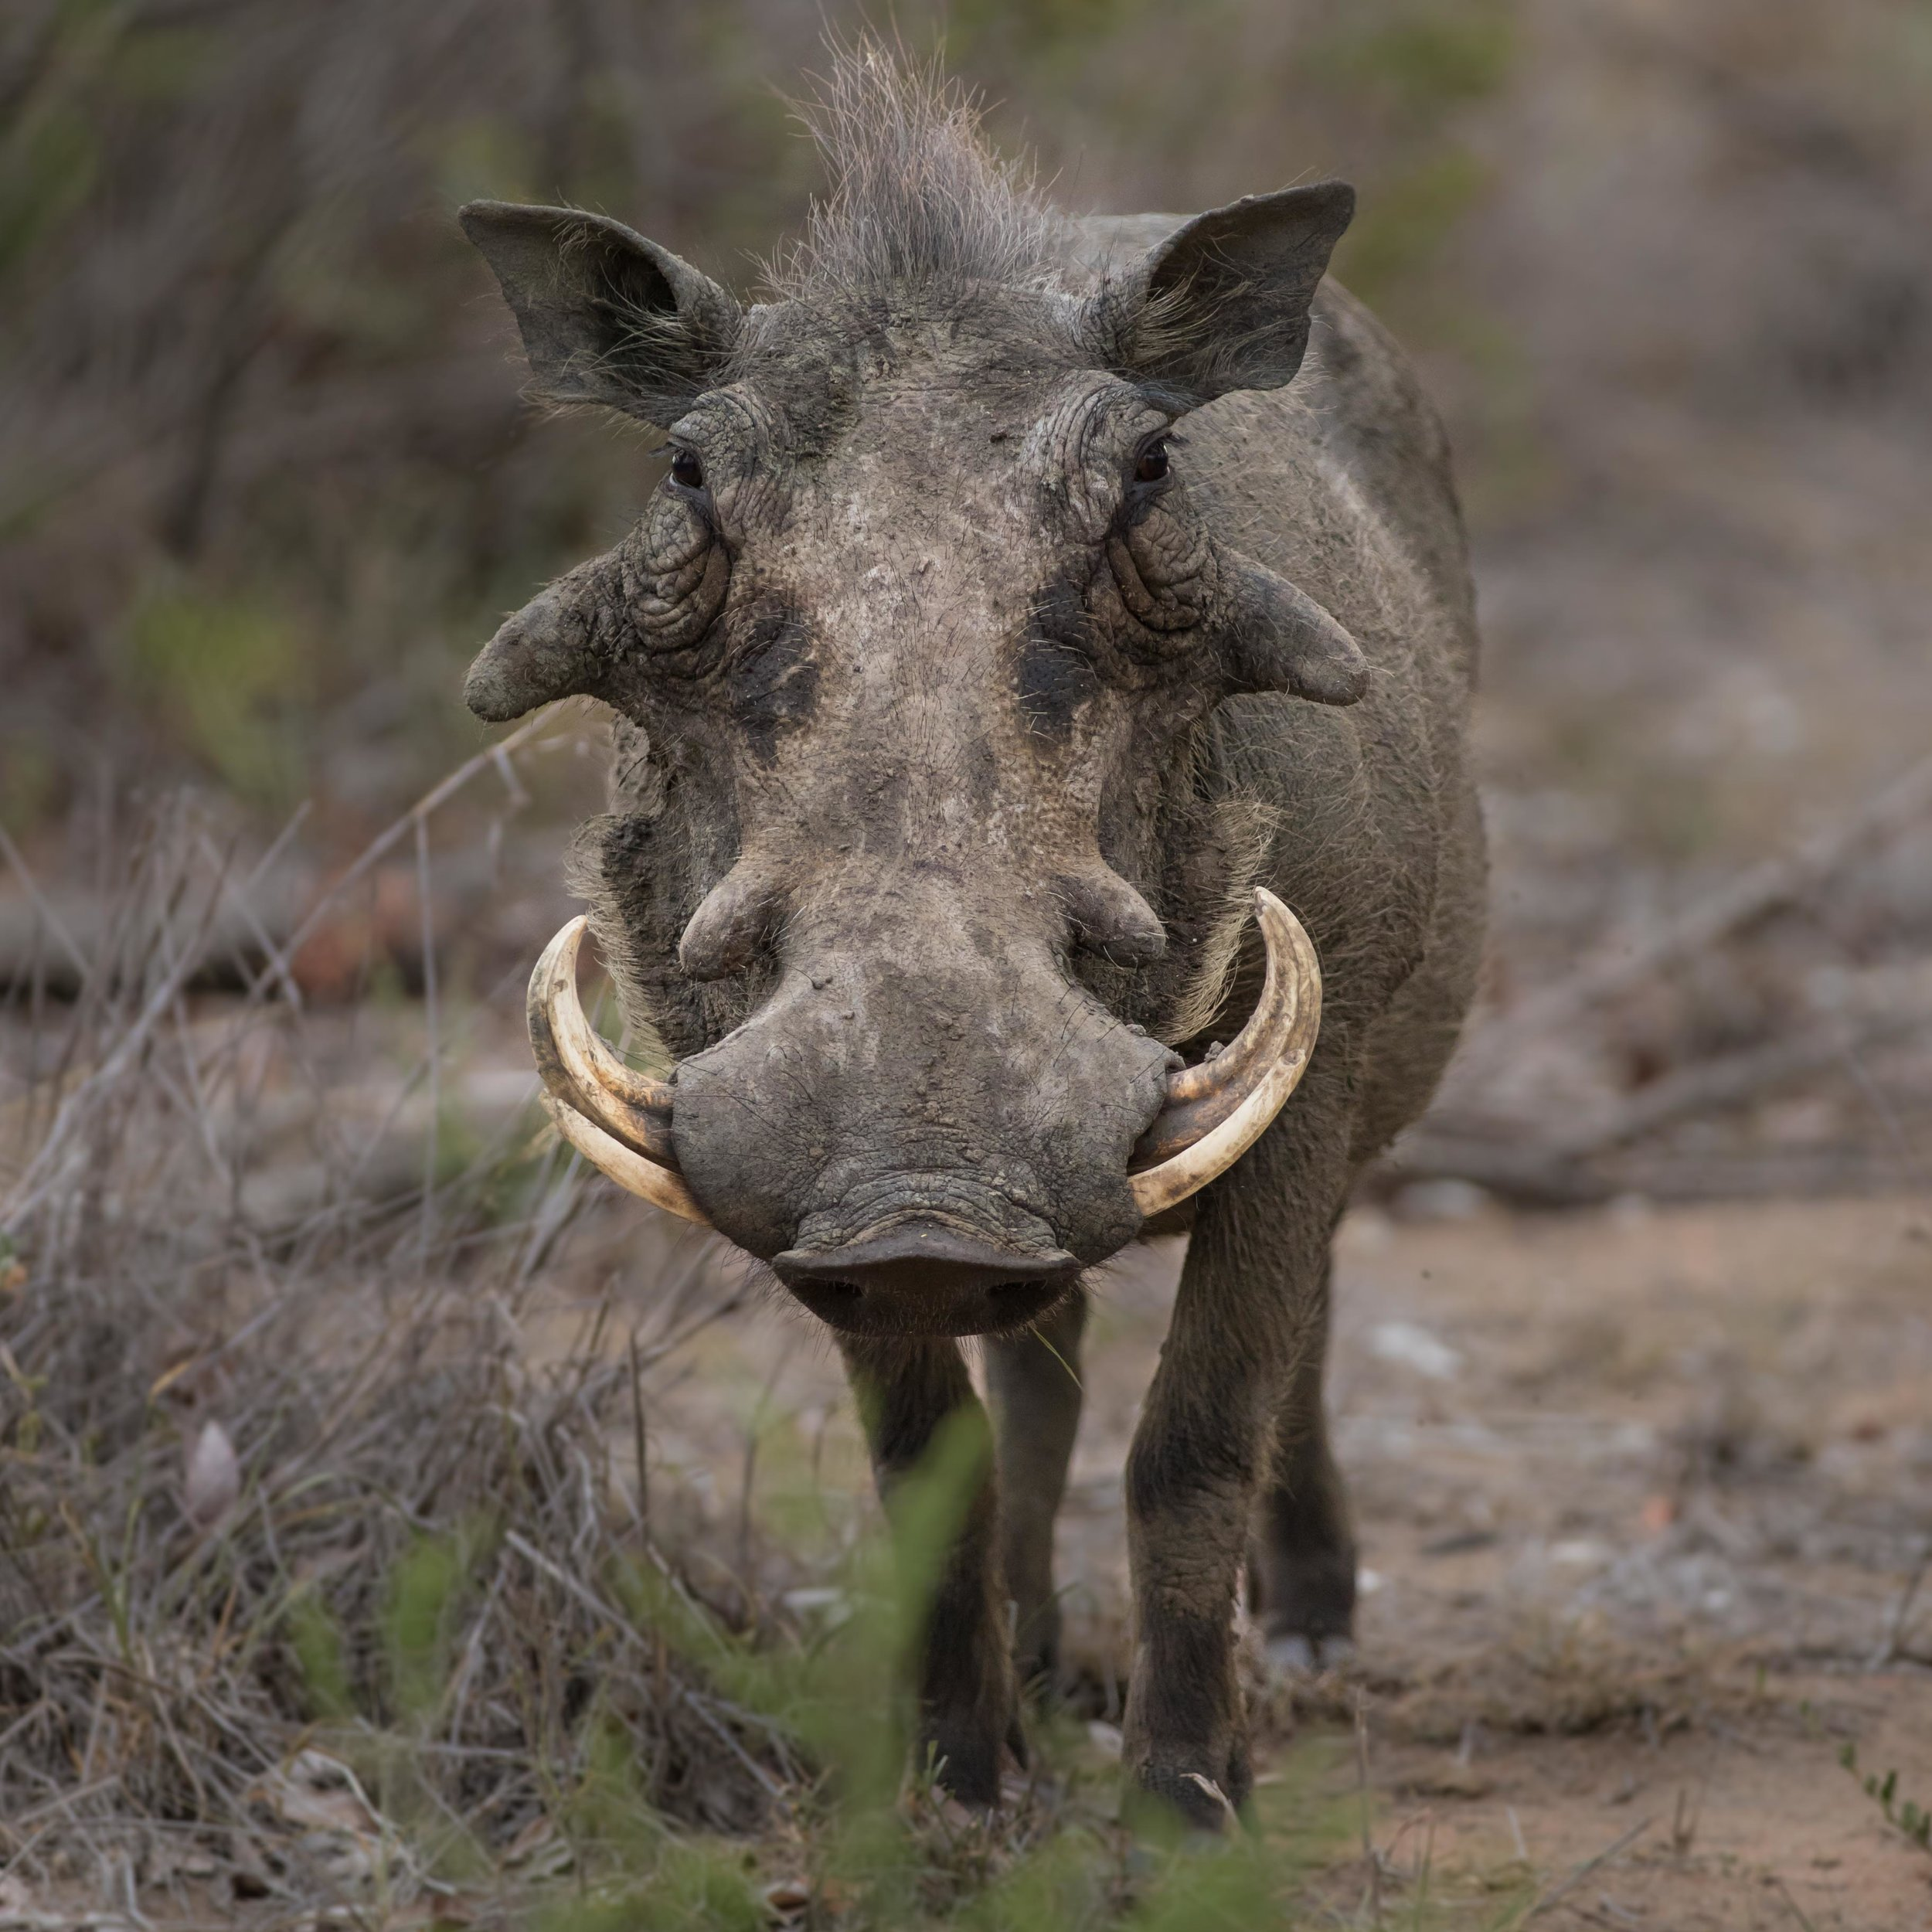 A male warthog stands motionless for a short while.